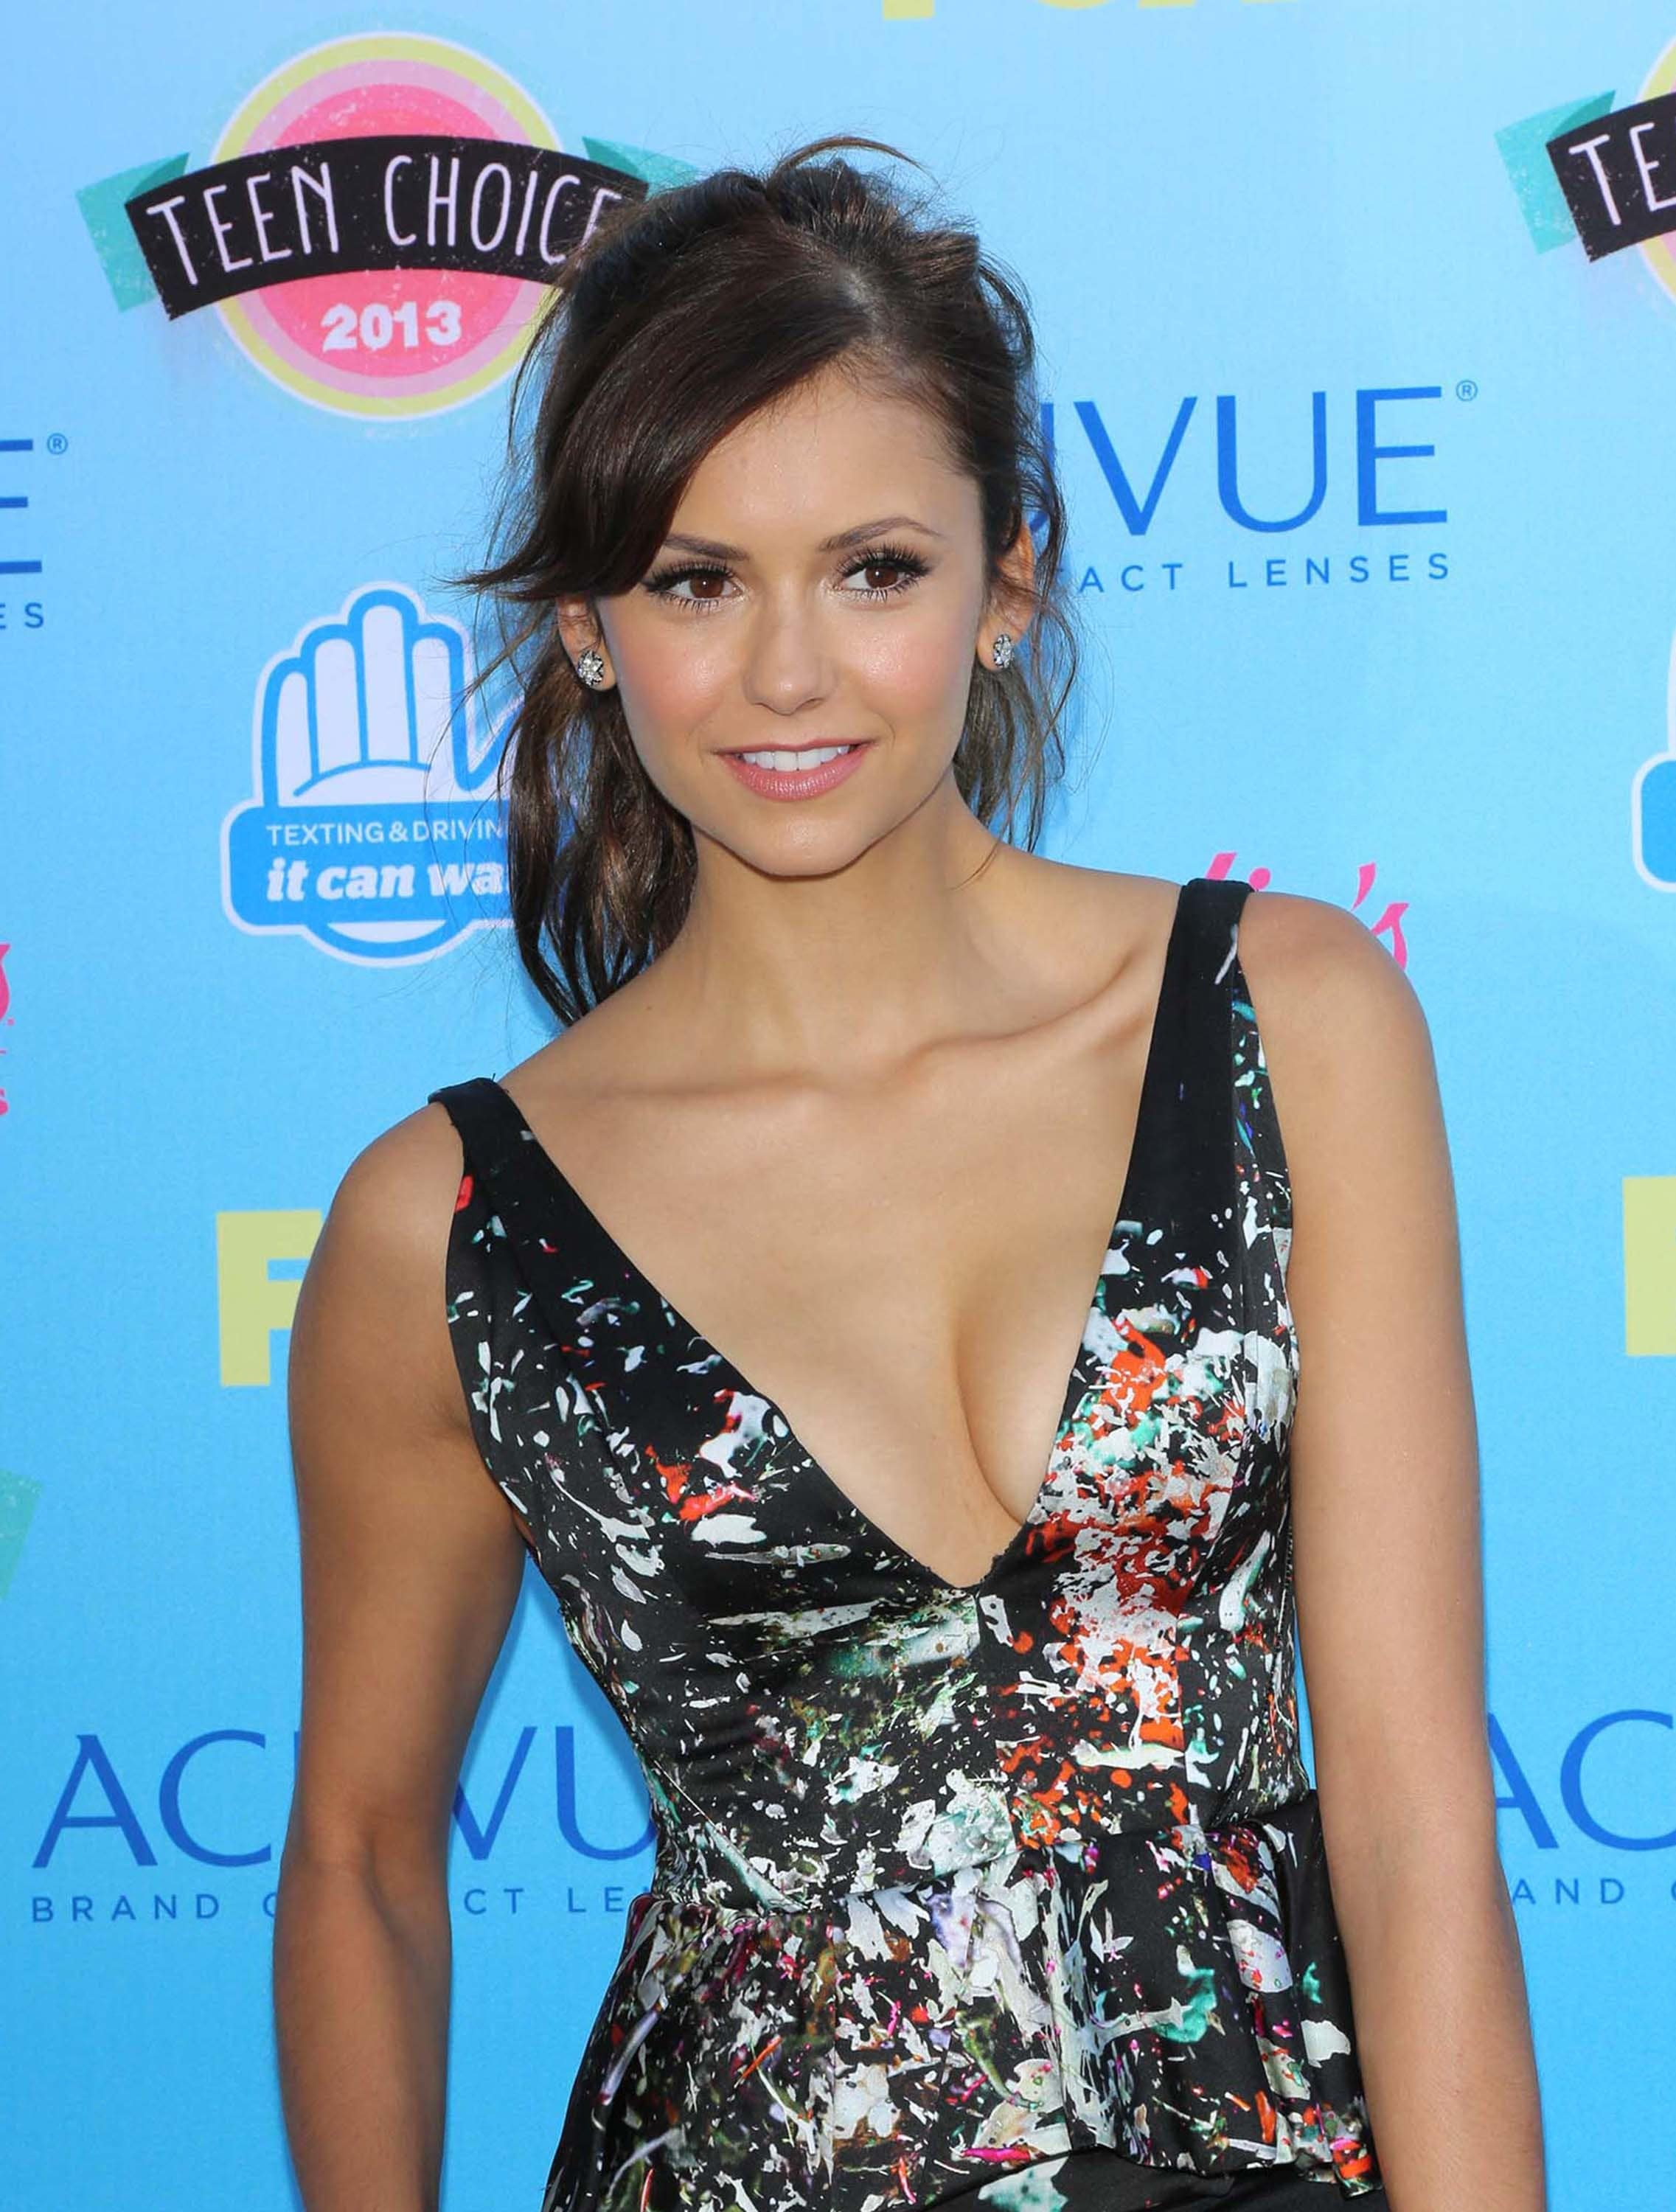 Nina Dobrev Cleavage Pic The Hollywood Gossip Cleavage is the narrow depression or hollow between human breasts. nina dobrev cleavage pic the